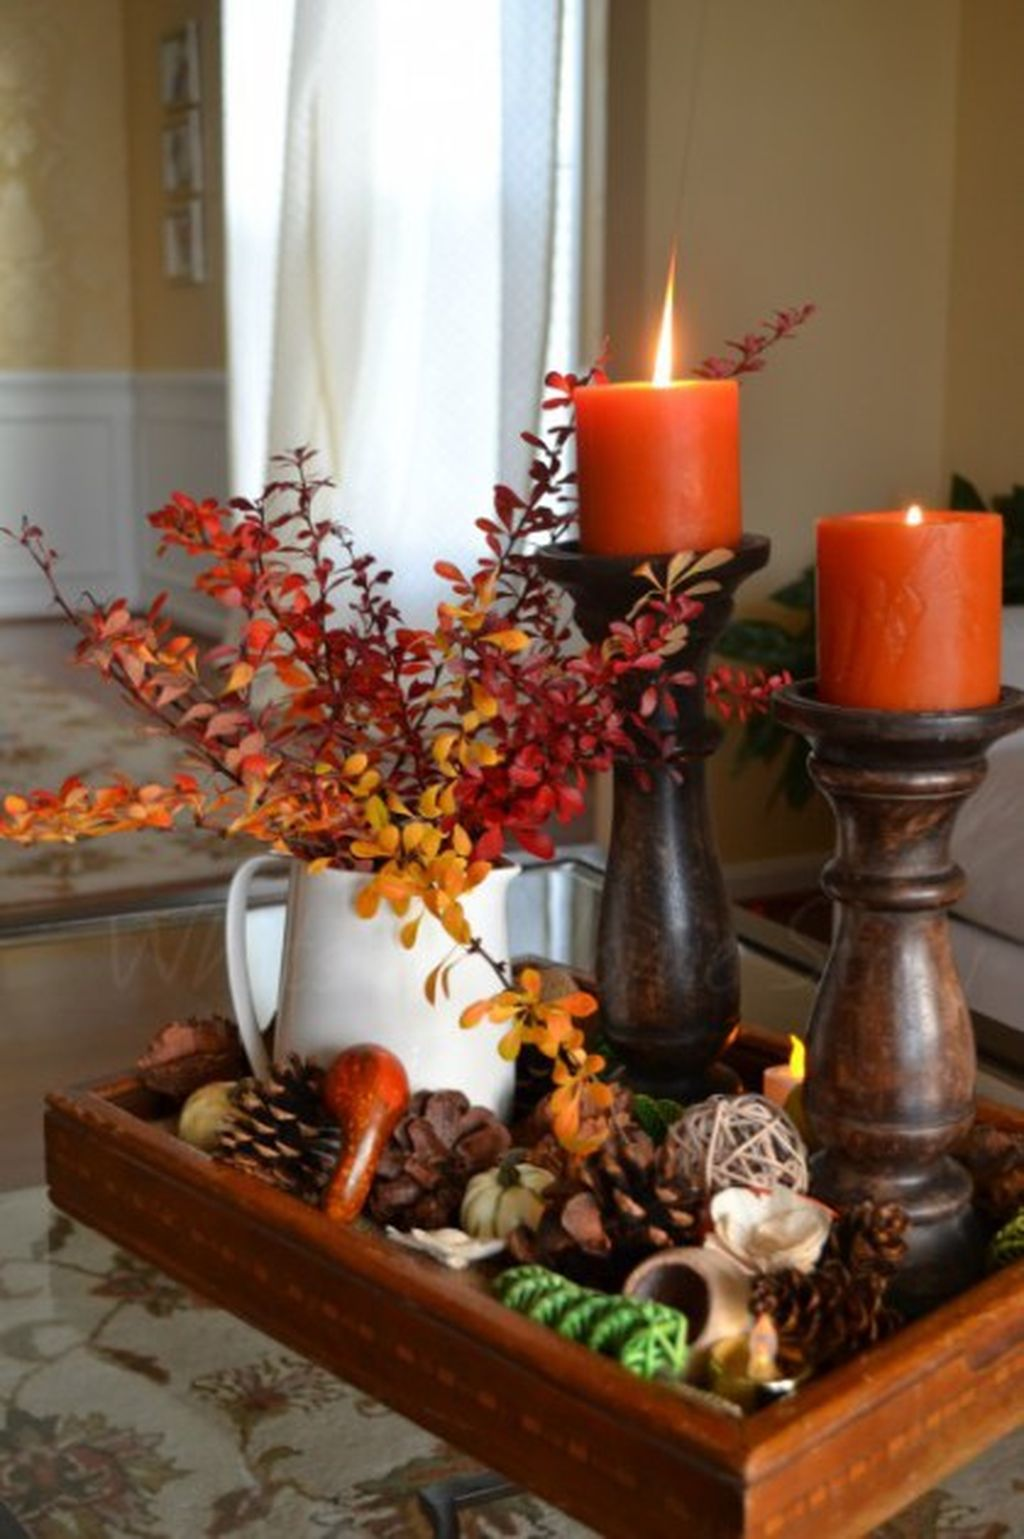 Inspiring Modern Rustic Christmas Centerpieces Ideas With Candles 84